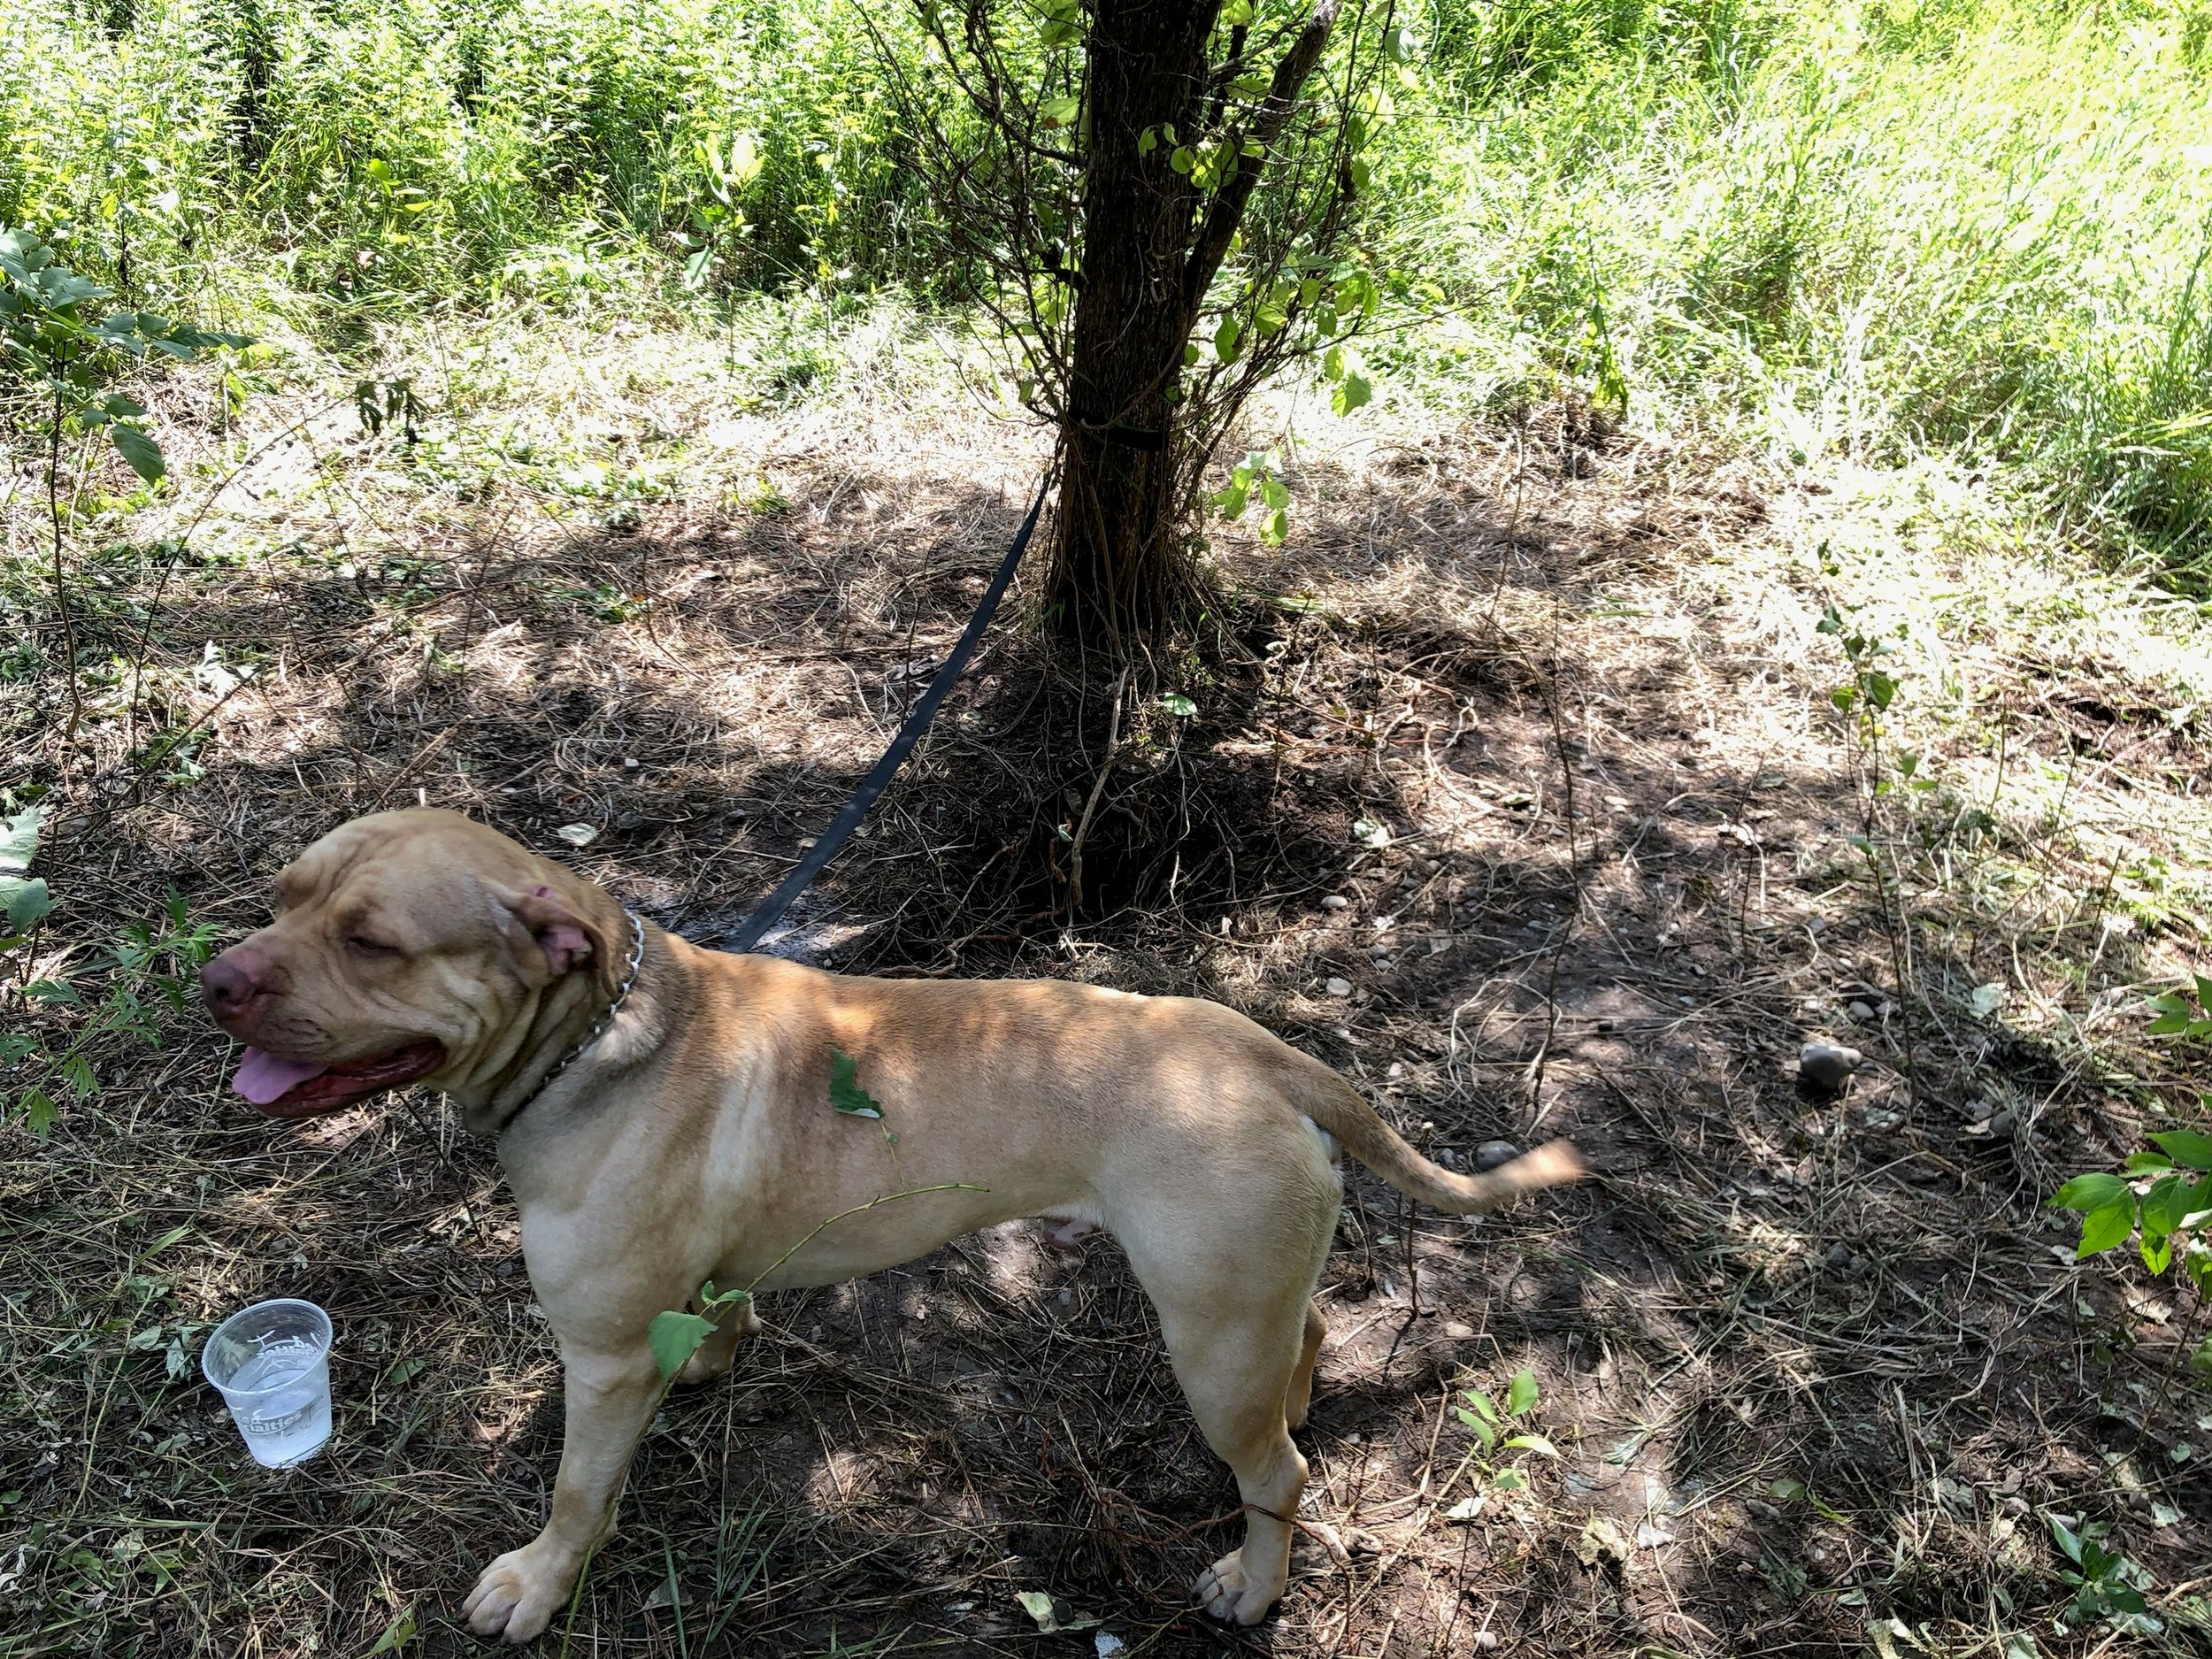 NYS DOT workers were getting ready to mow when they heard a dog barking in the woods. The dog was found tied to a tree off of Interstate 84 in the Town of East Fishkill. A reward is being offered for information leading to the arrest and conviction of those responsible for abandoning this animal.